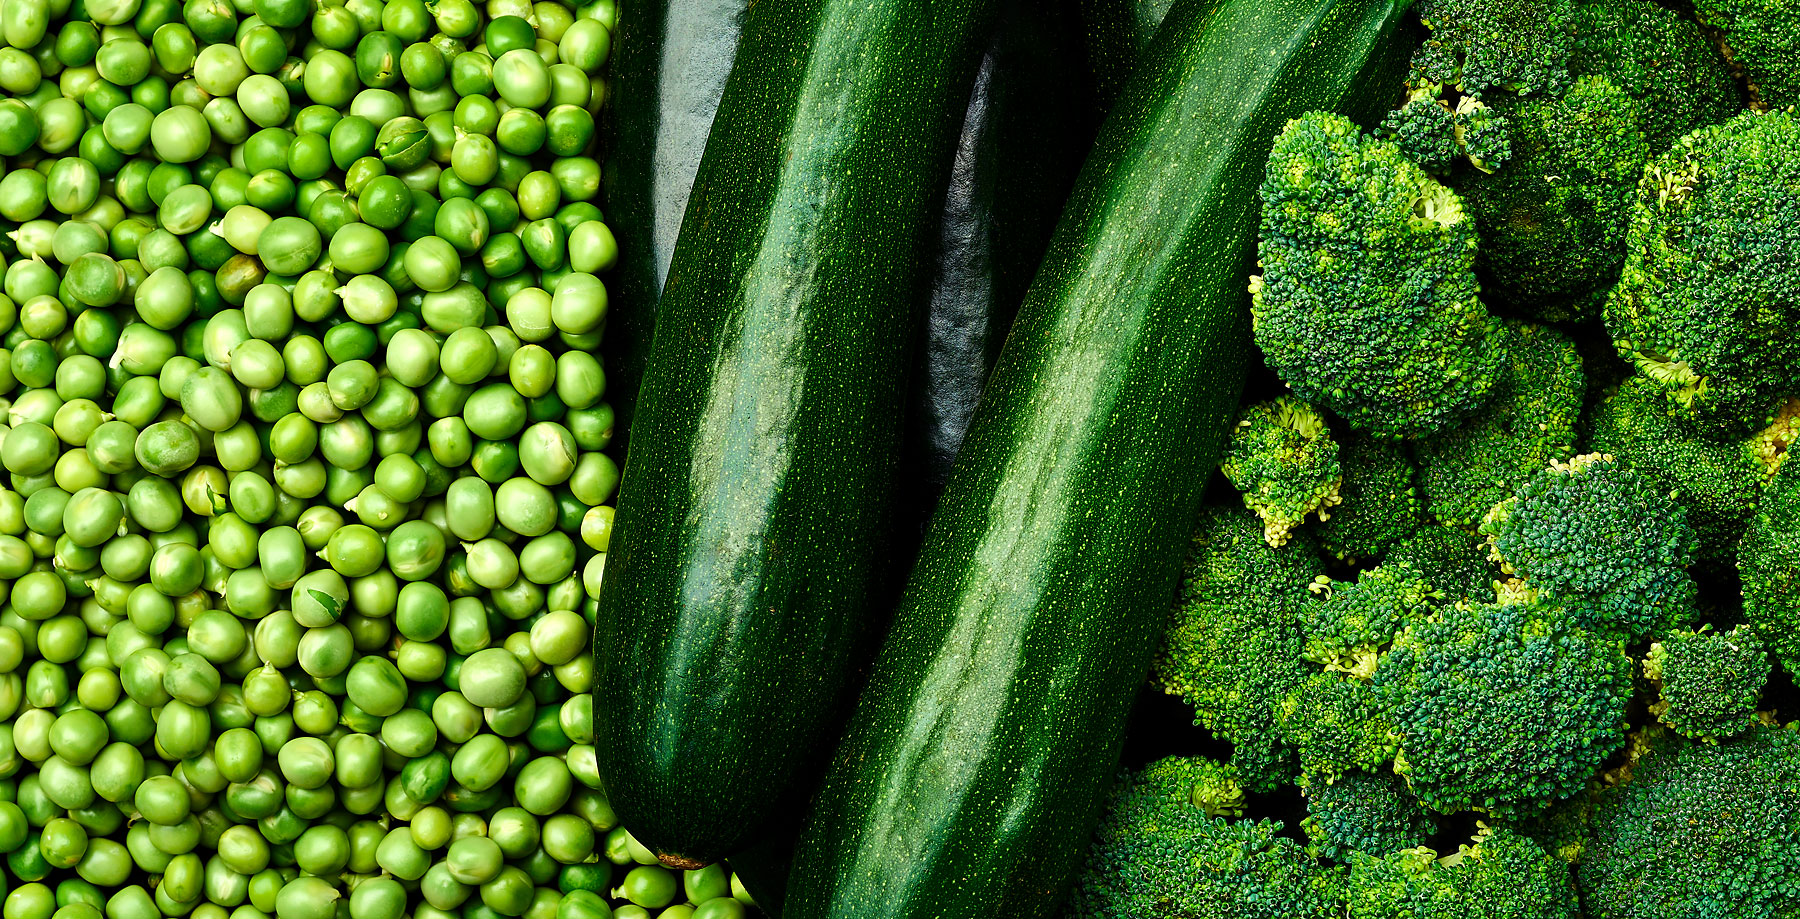 Peas, courgettes and broccoli